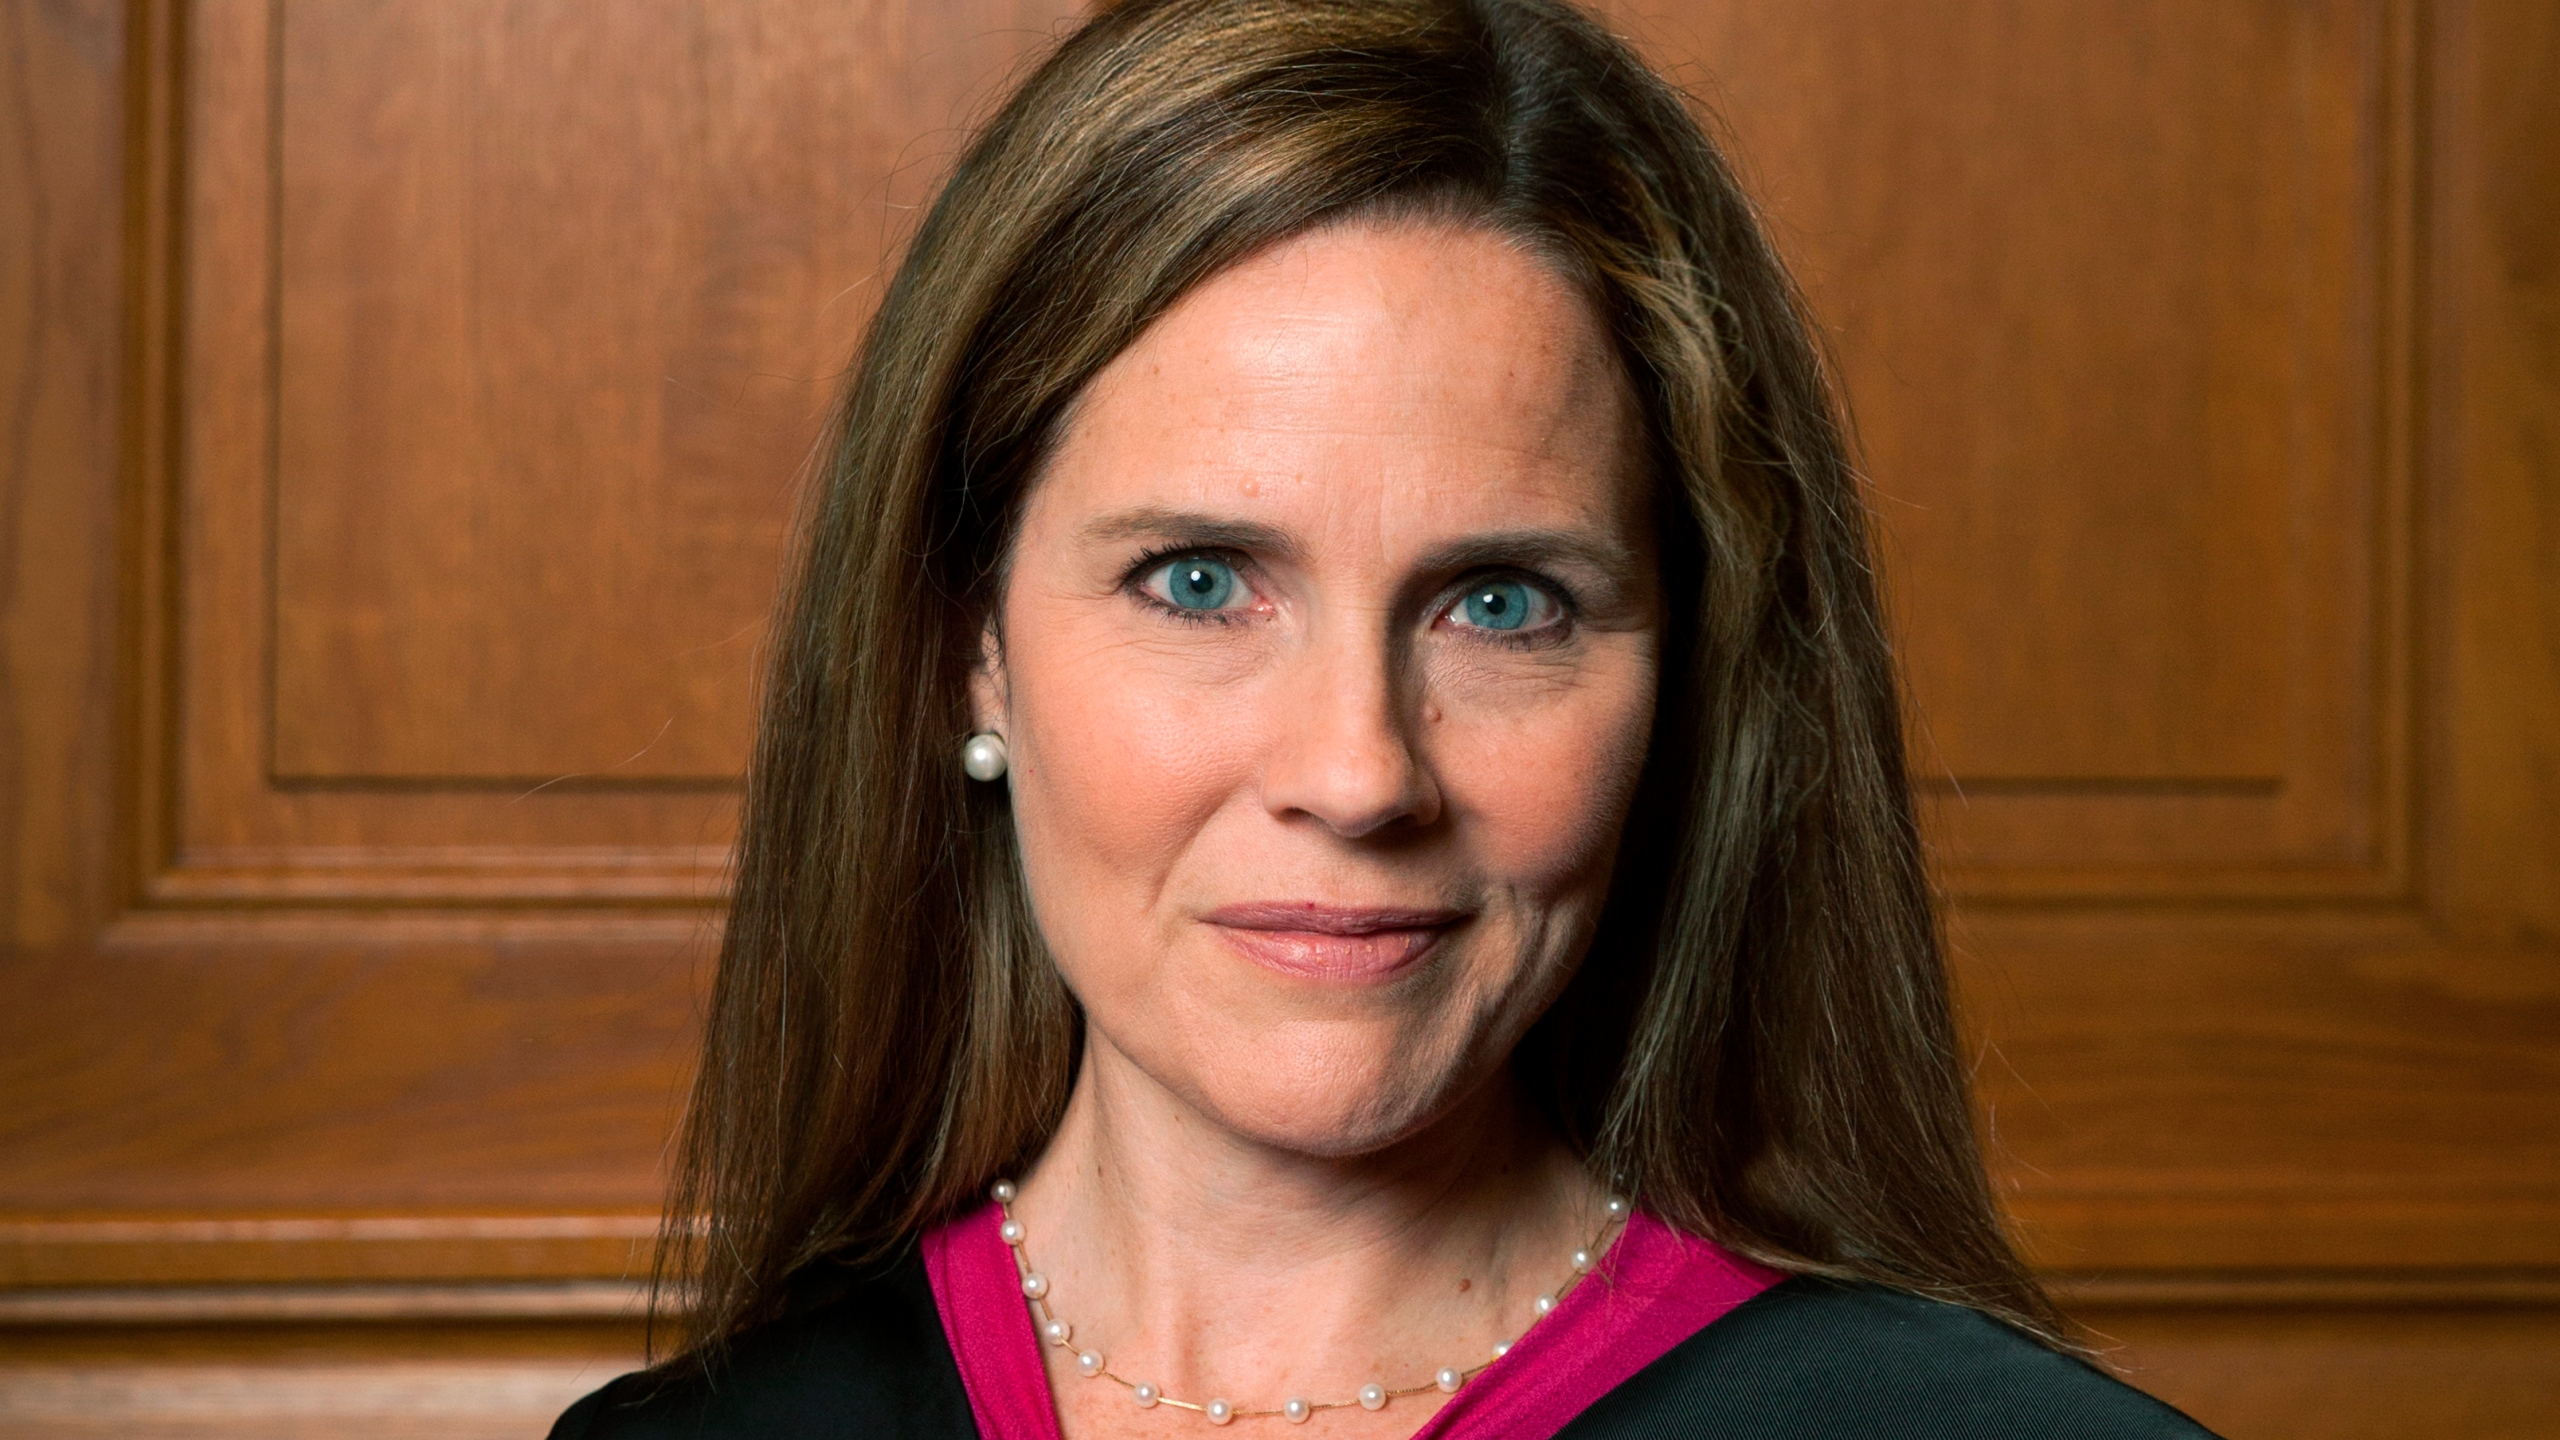 This image provided by Rachel Malehorn shows Judge Amy Coney Barrett in Milwaukee, on Aug. 24, 2018. (Rachel Malehorn, via Associated Press)